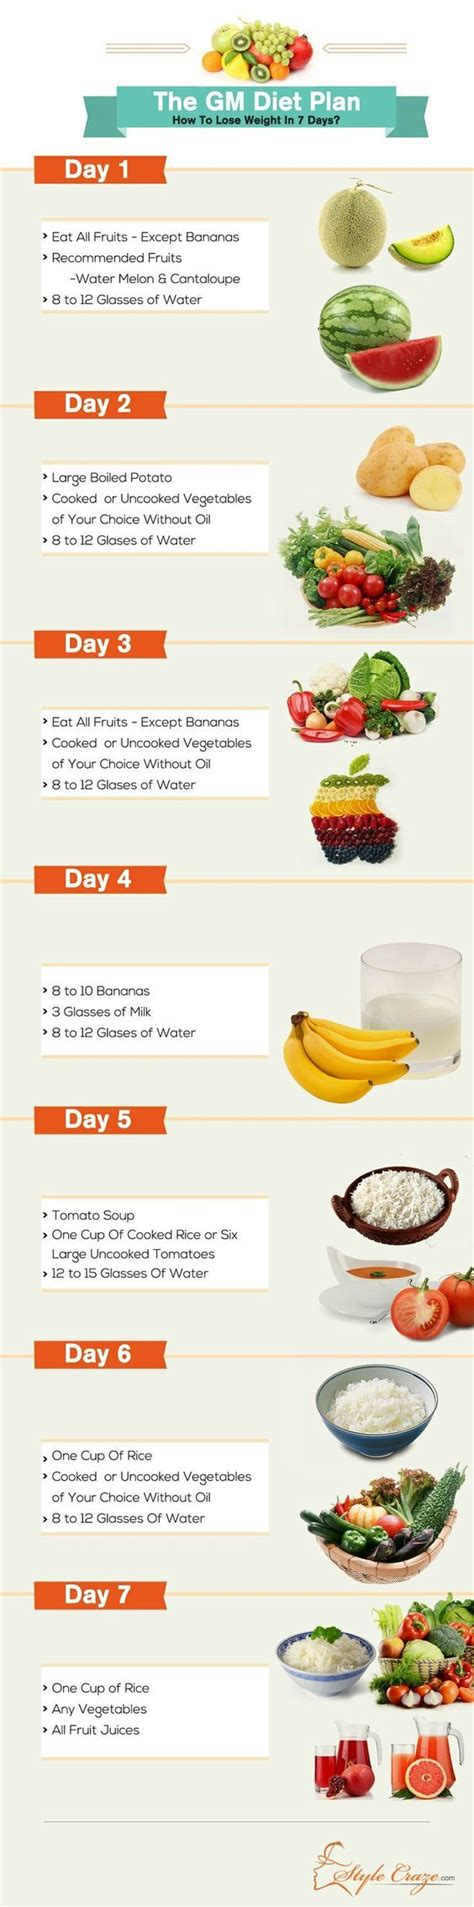 Plant Detox Diet Plan Free by The Gm Diet Plan How To Lose Weight In Just 7 Days